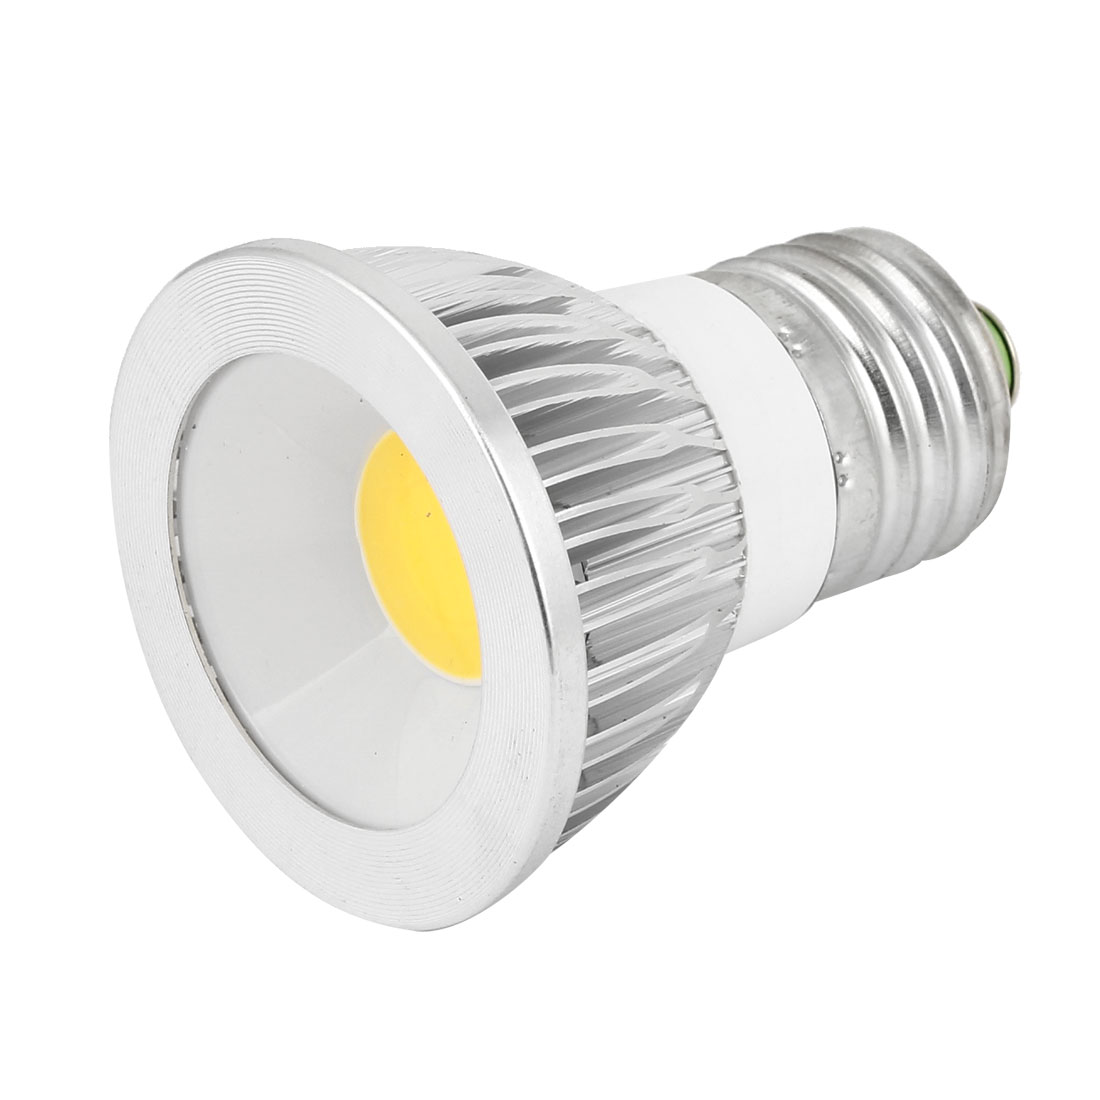 AC 85-265V 6W E27 Dimmable Warm White Light COB LED Downlight Lamp